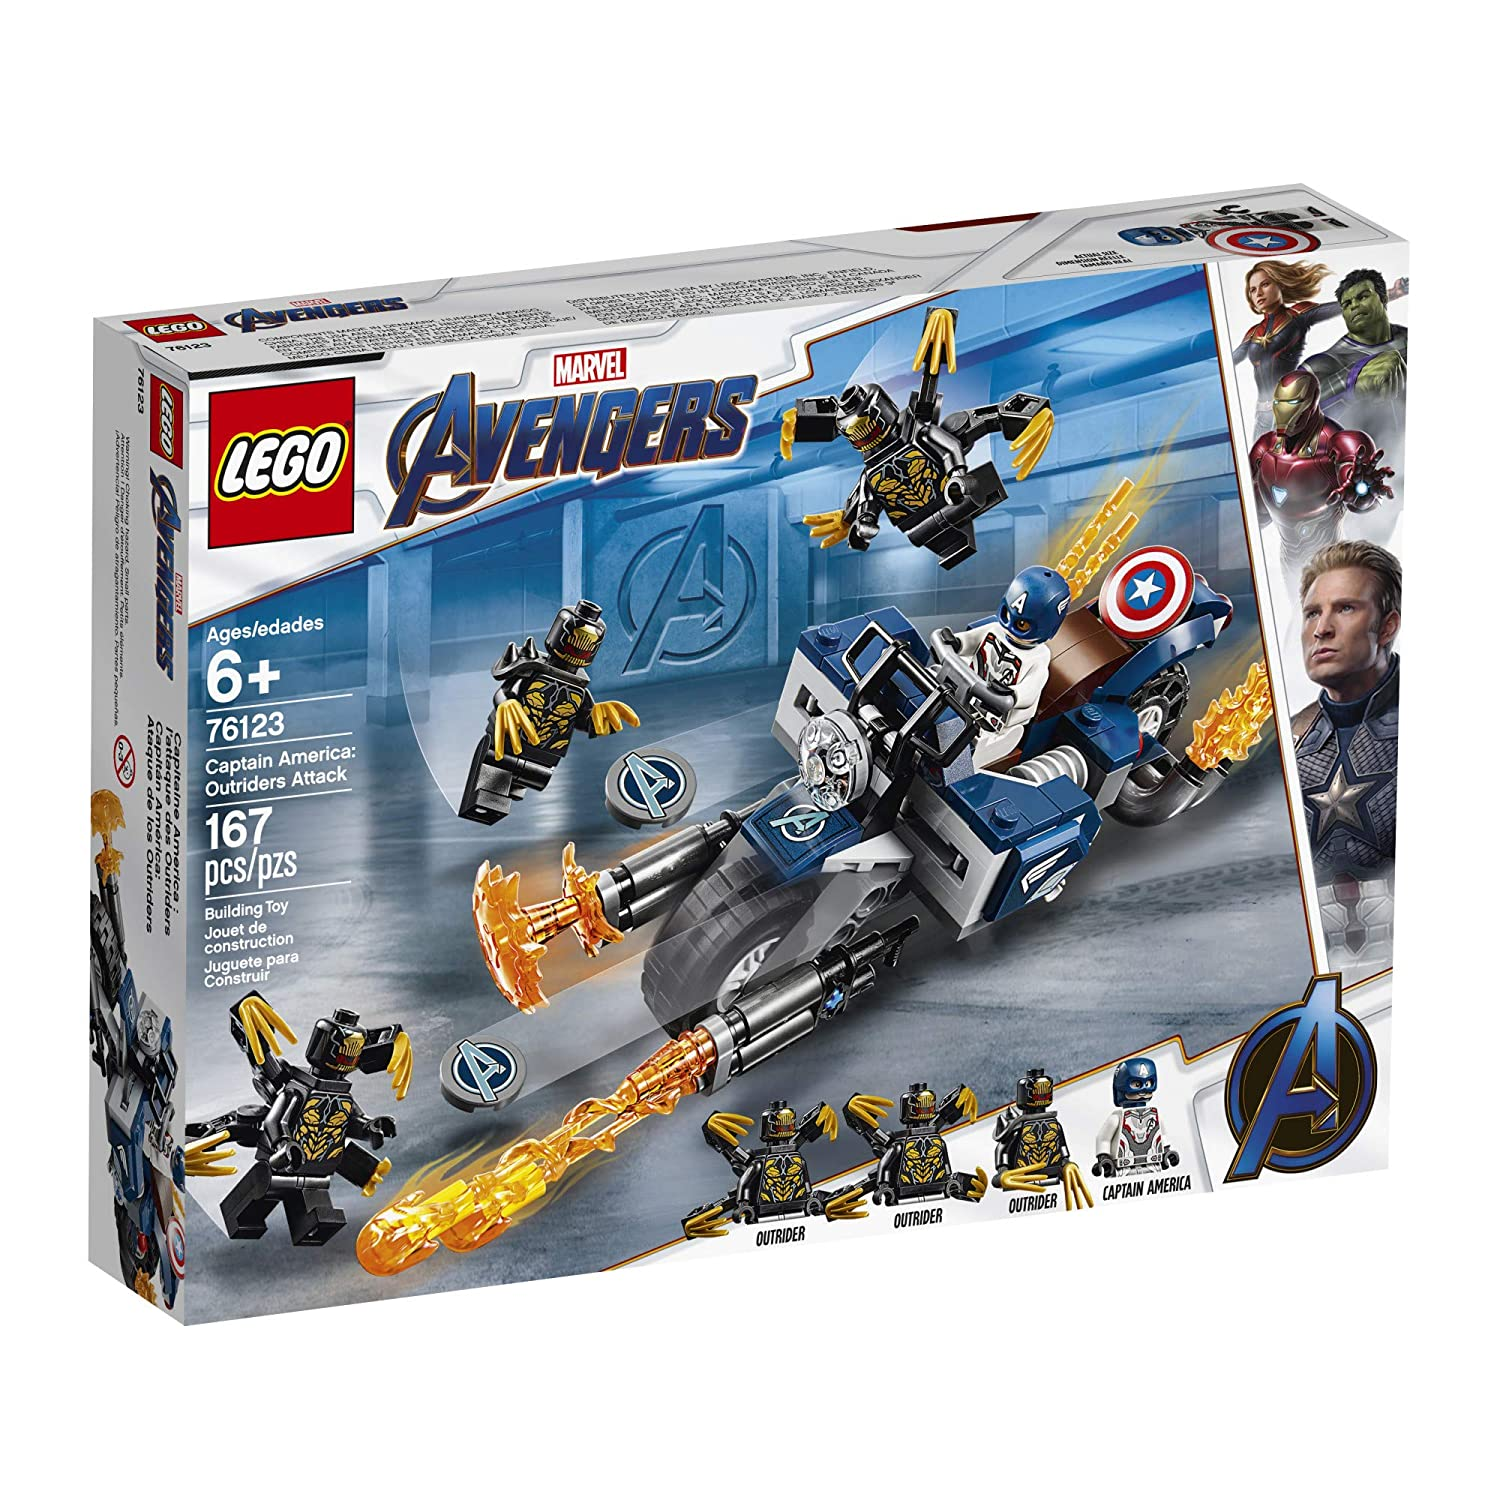 Top 9 Best LEGO Captain America Sets Reviews in 2020 1